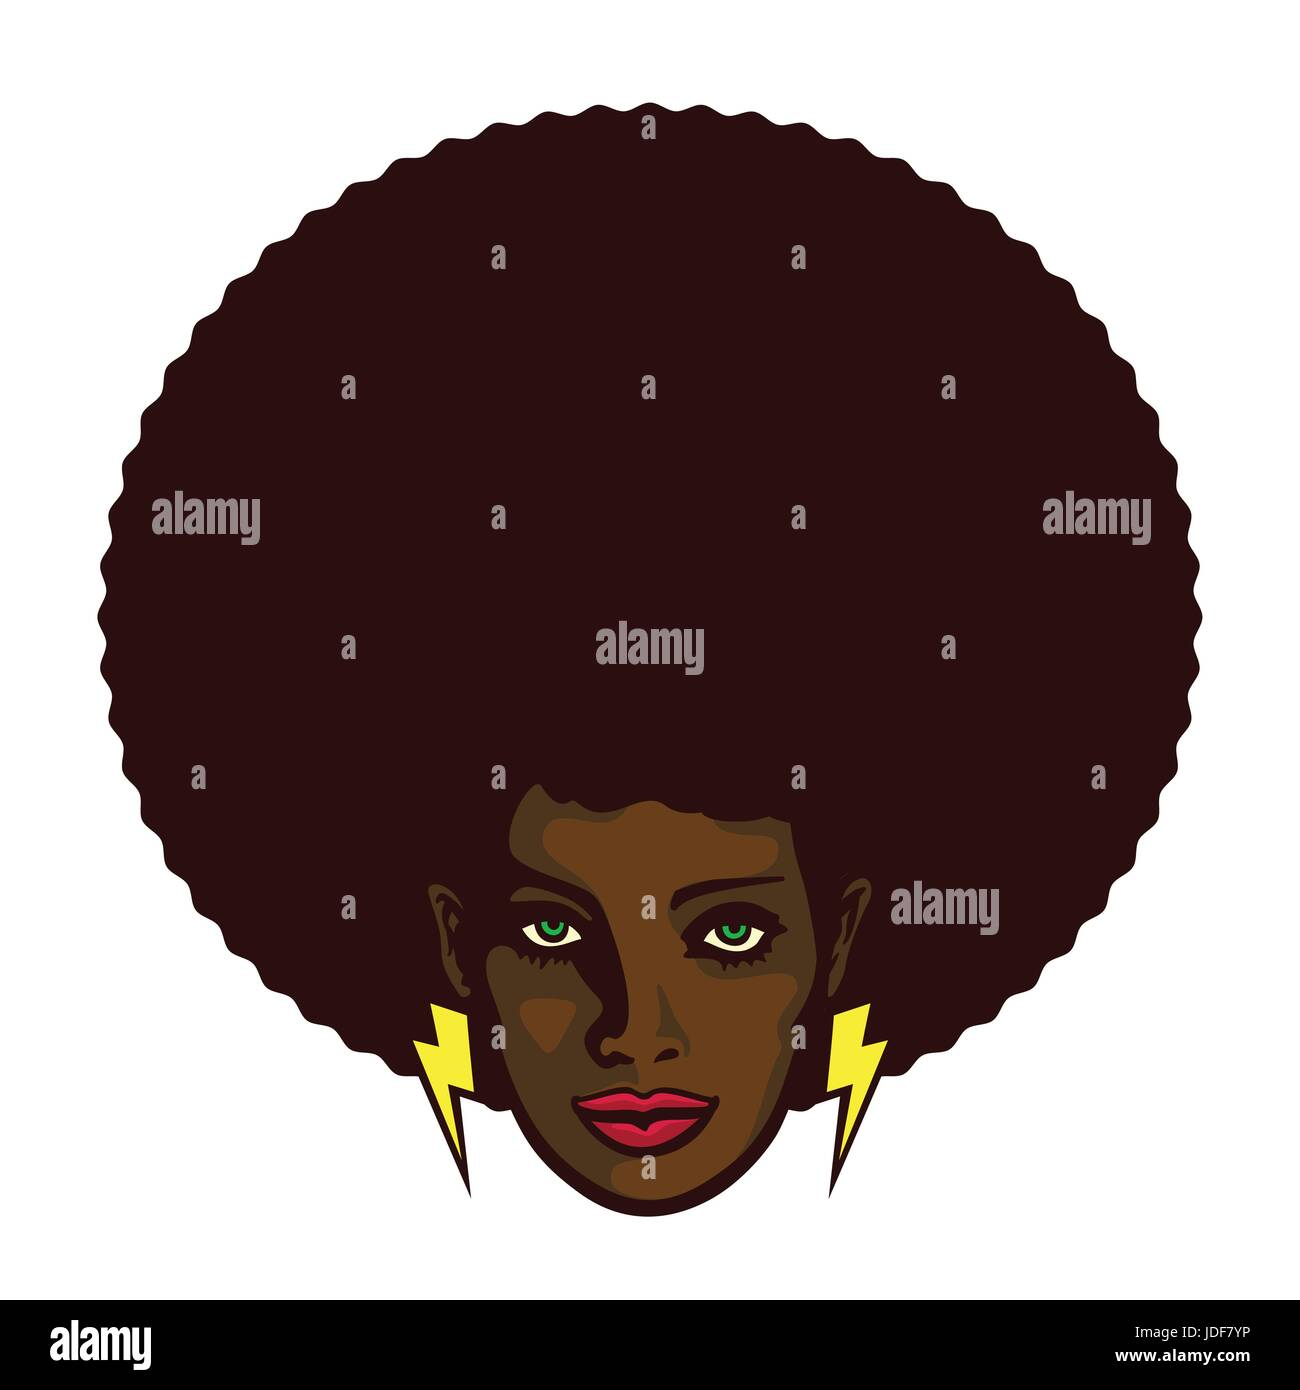 Black woman with afro hair and lightning bolt earrings vector illustration, determined groovy cool girl face - Stock Image